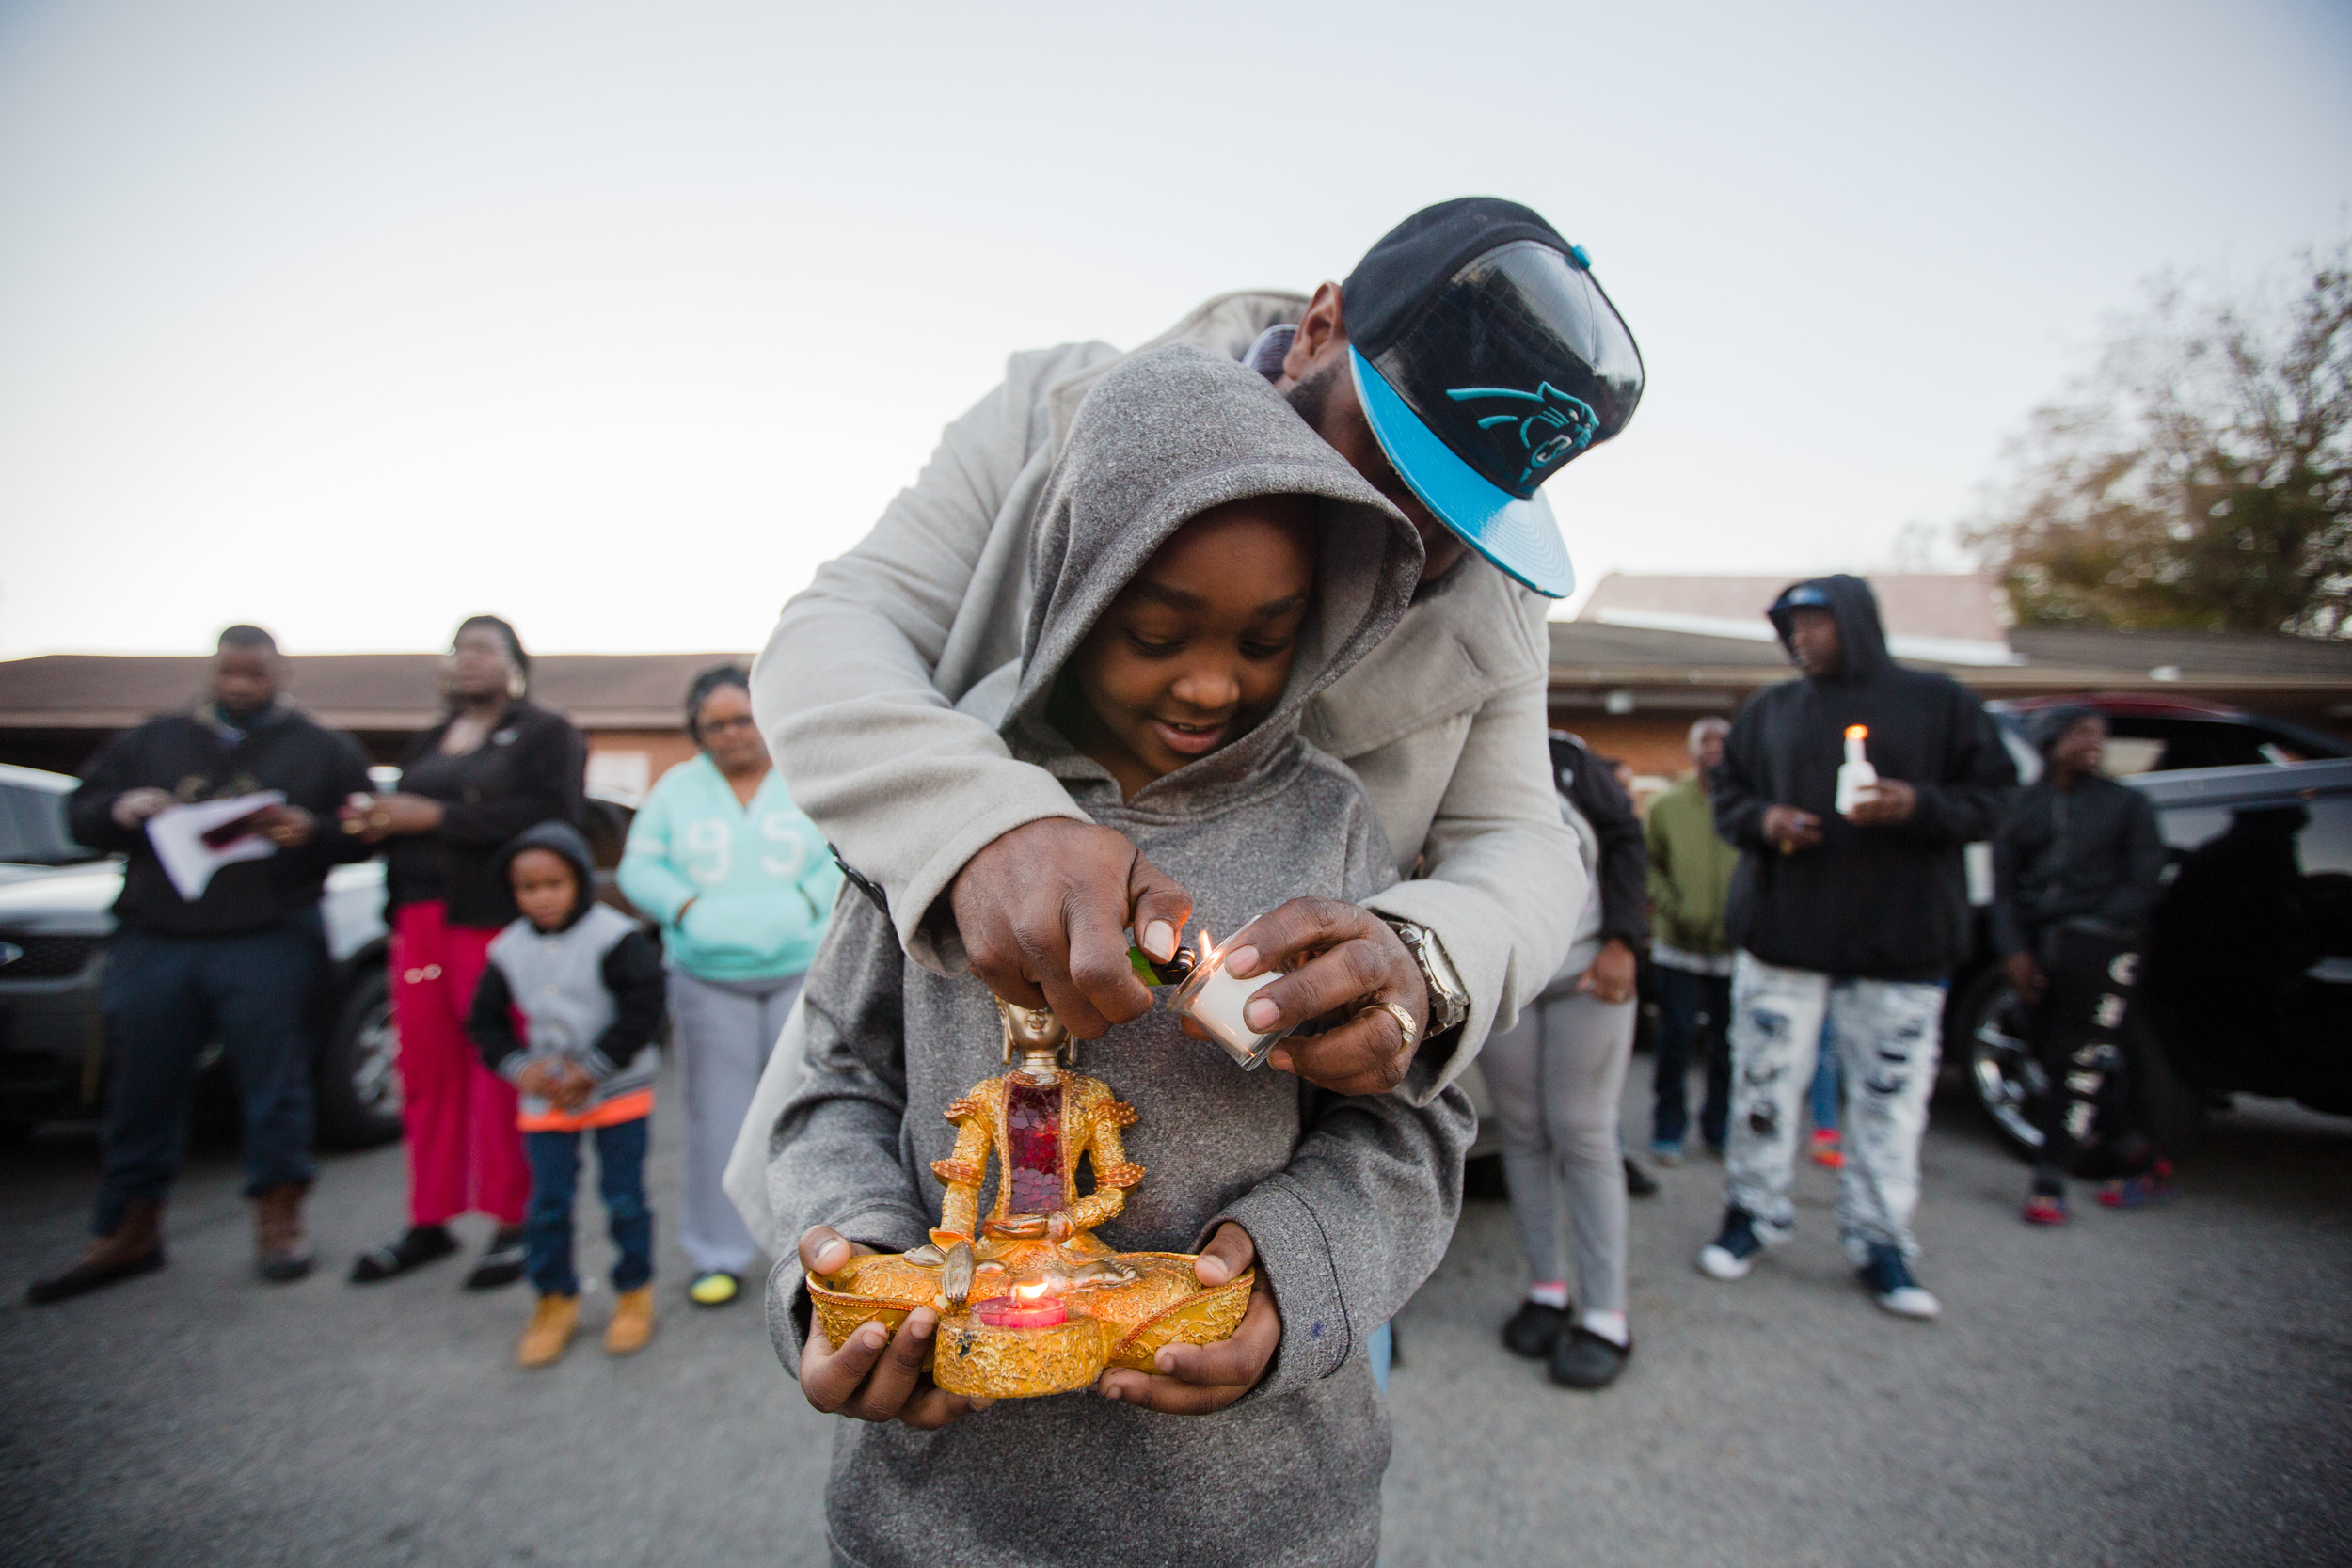 Herbert Benjamin and his son, Dimarion, regulars at the store, hold candles during the vigil. Benjamin and his wife, Sharon, organized the event.